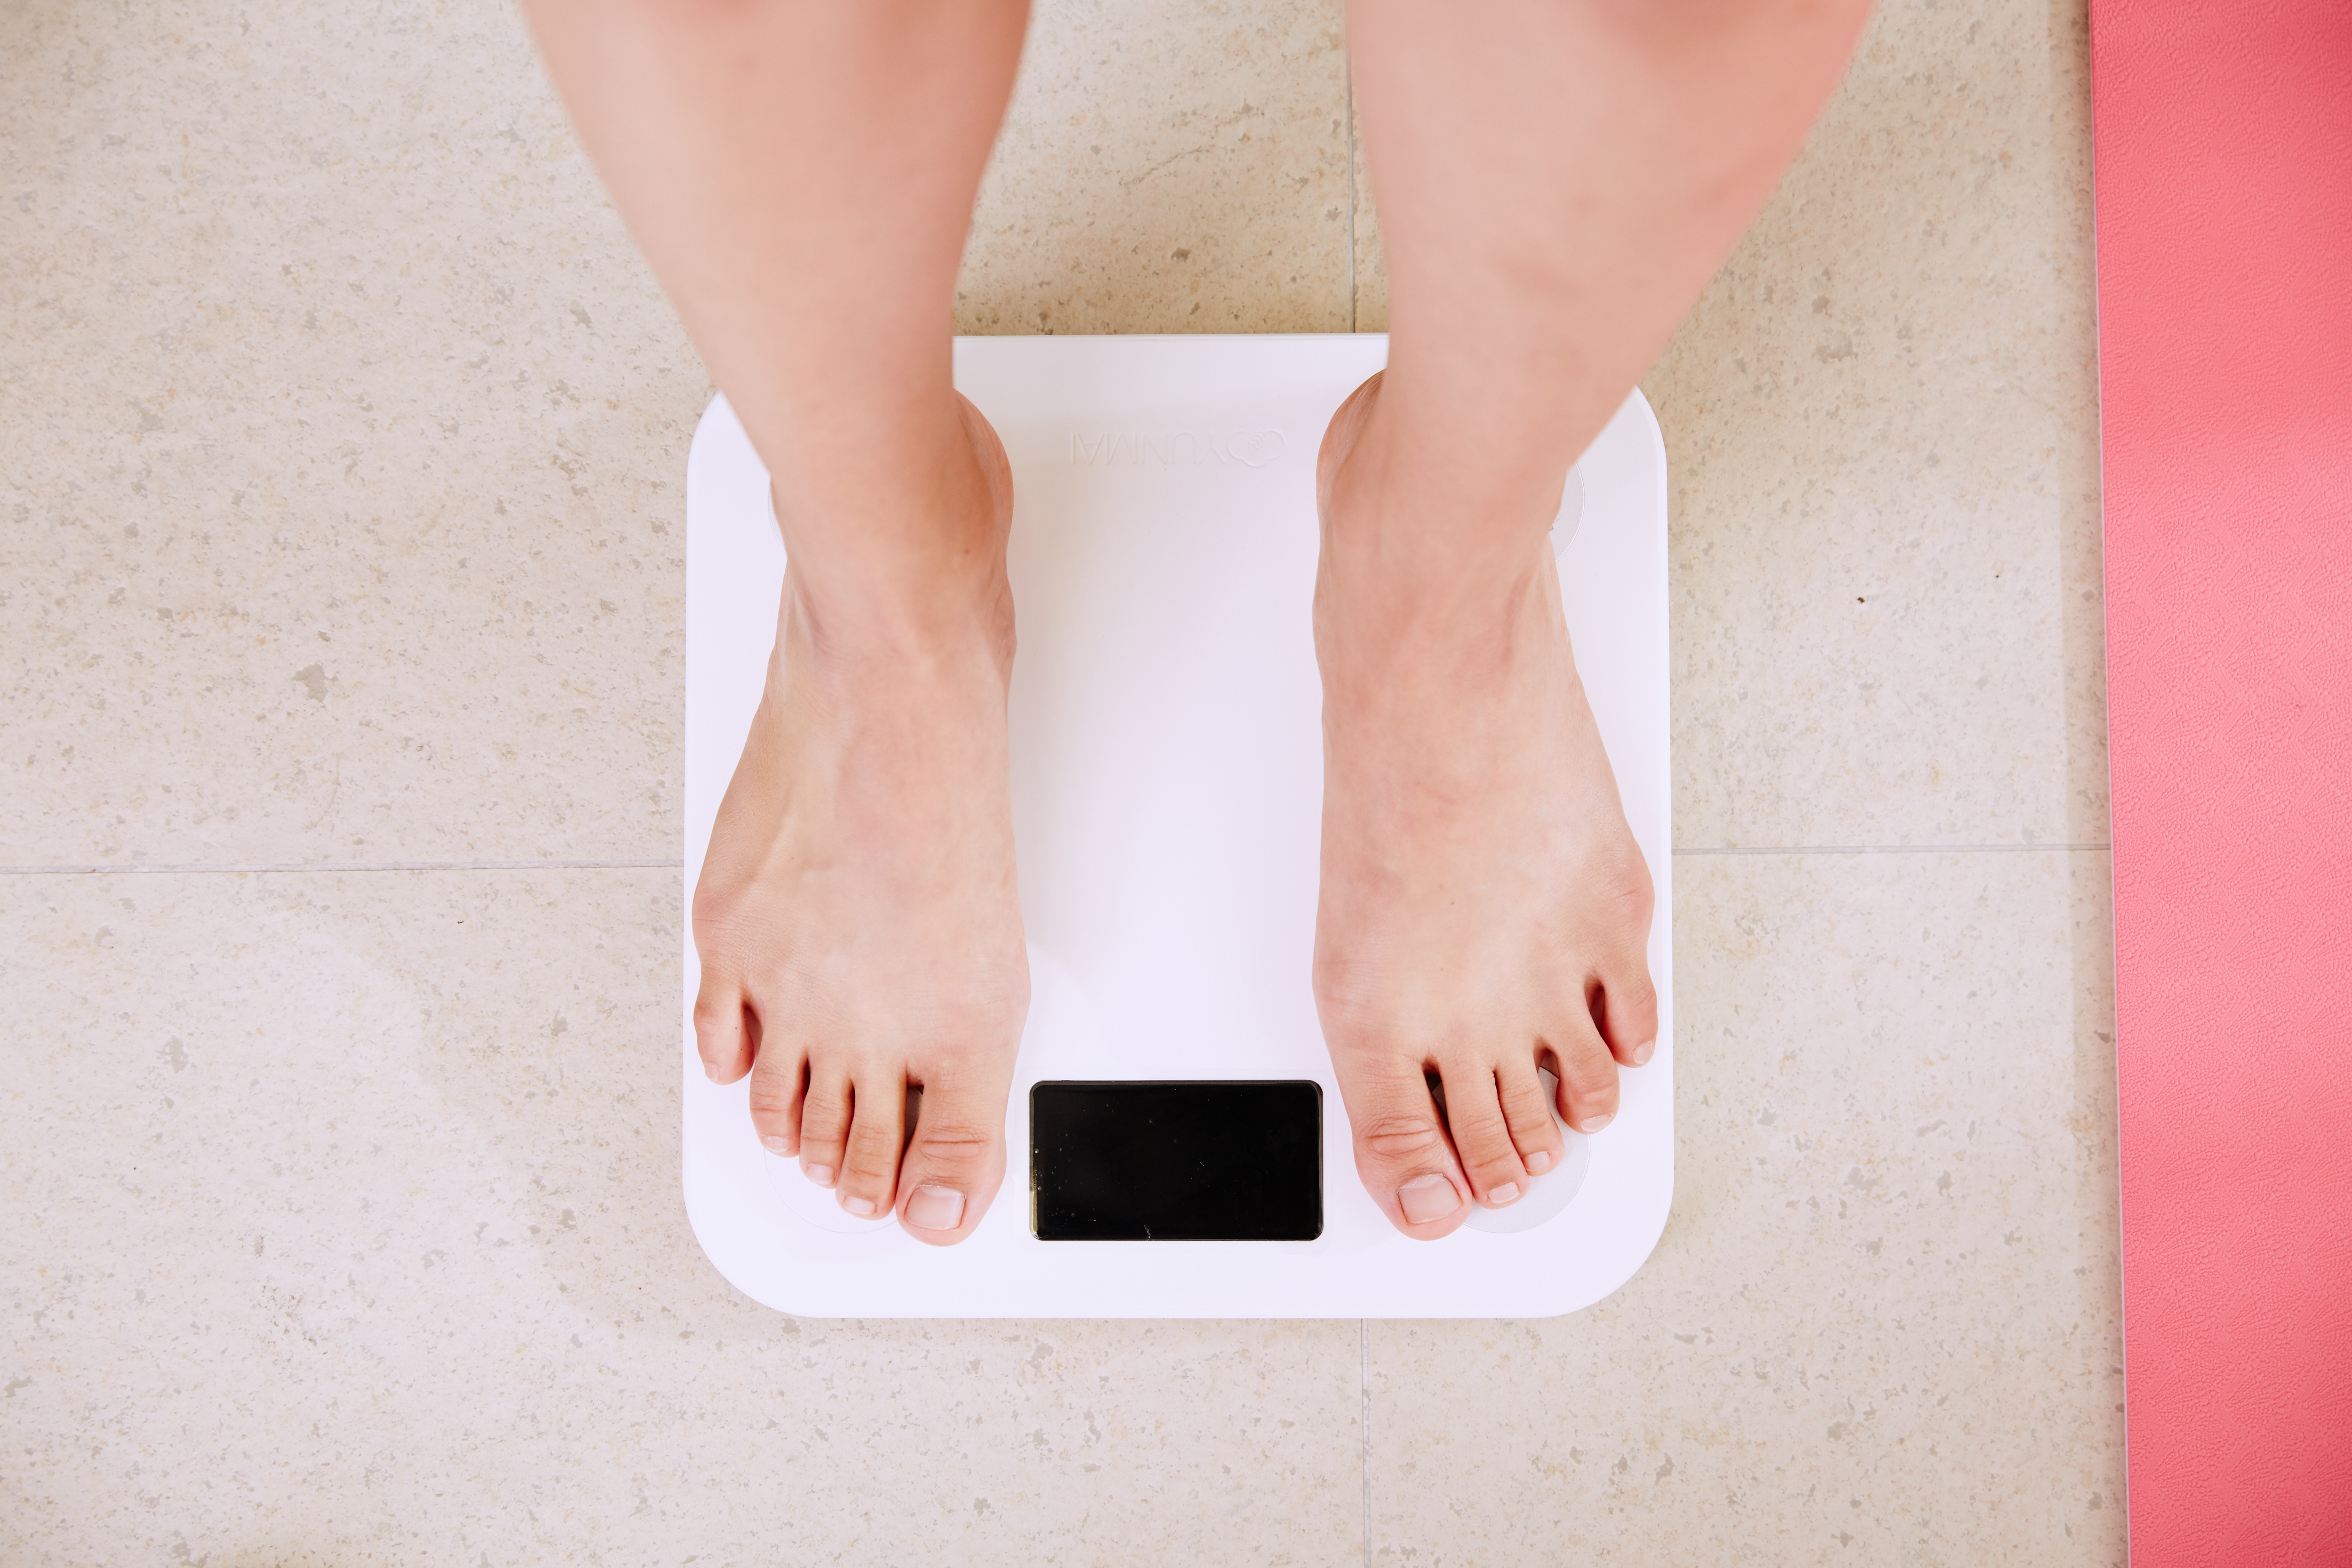 image of a pair of feet on a weighing scale